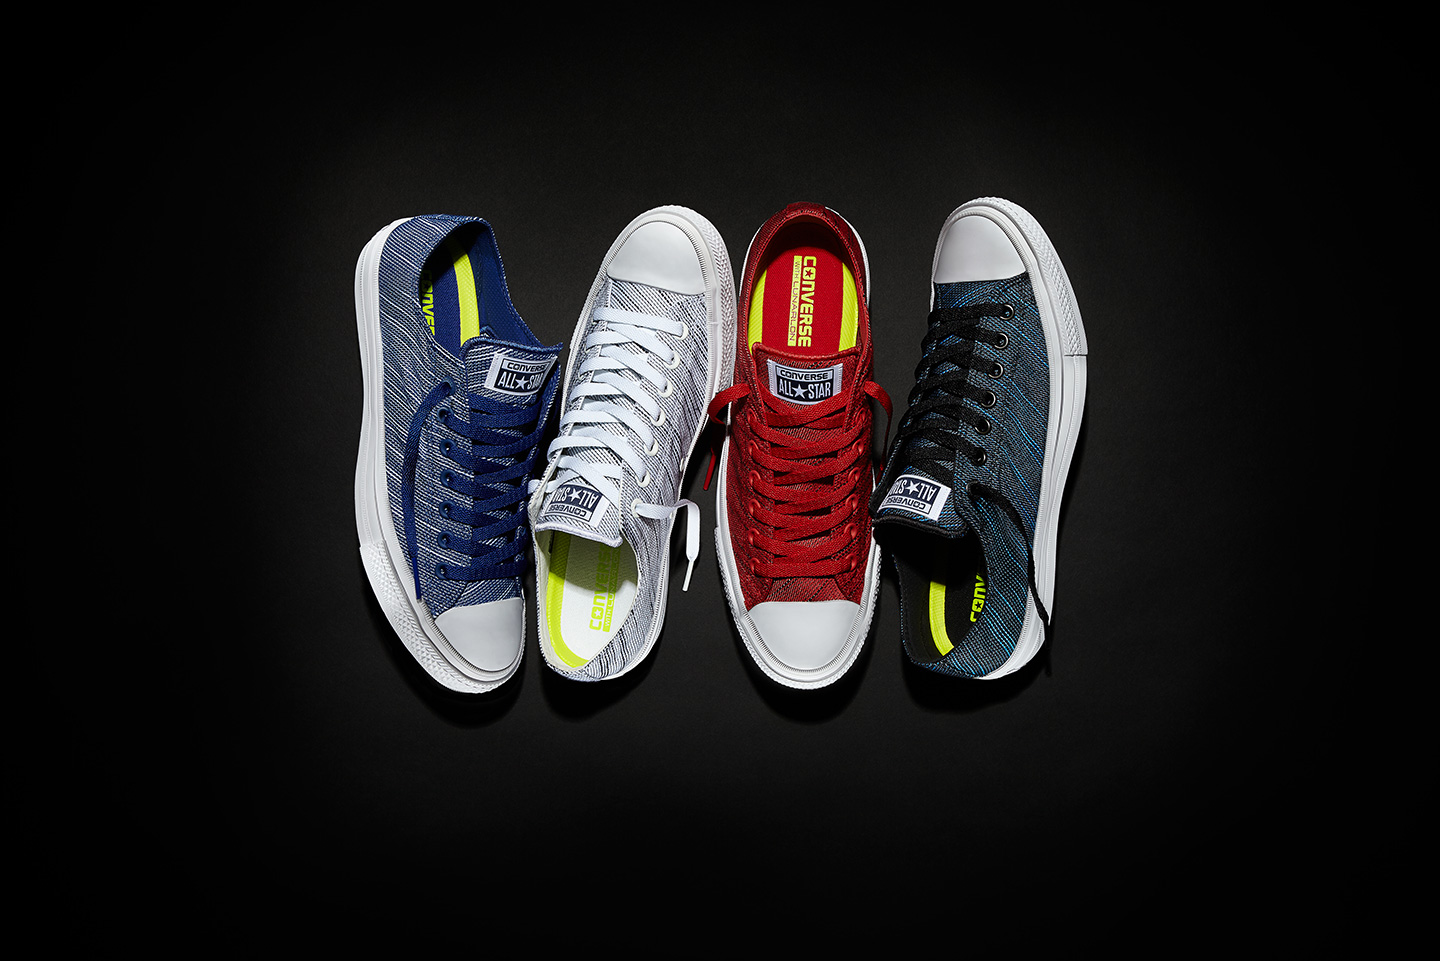 9ca5f0638fb2 The new Converse Chuck Taylor All Star II Knit collection complements you  for the spring with a launch date of April 25 in Volt Green